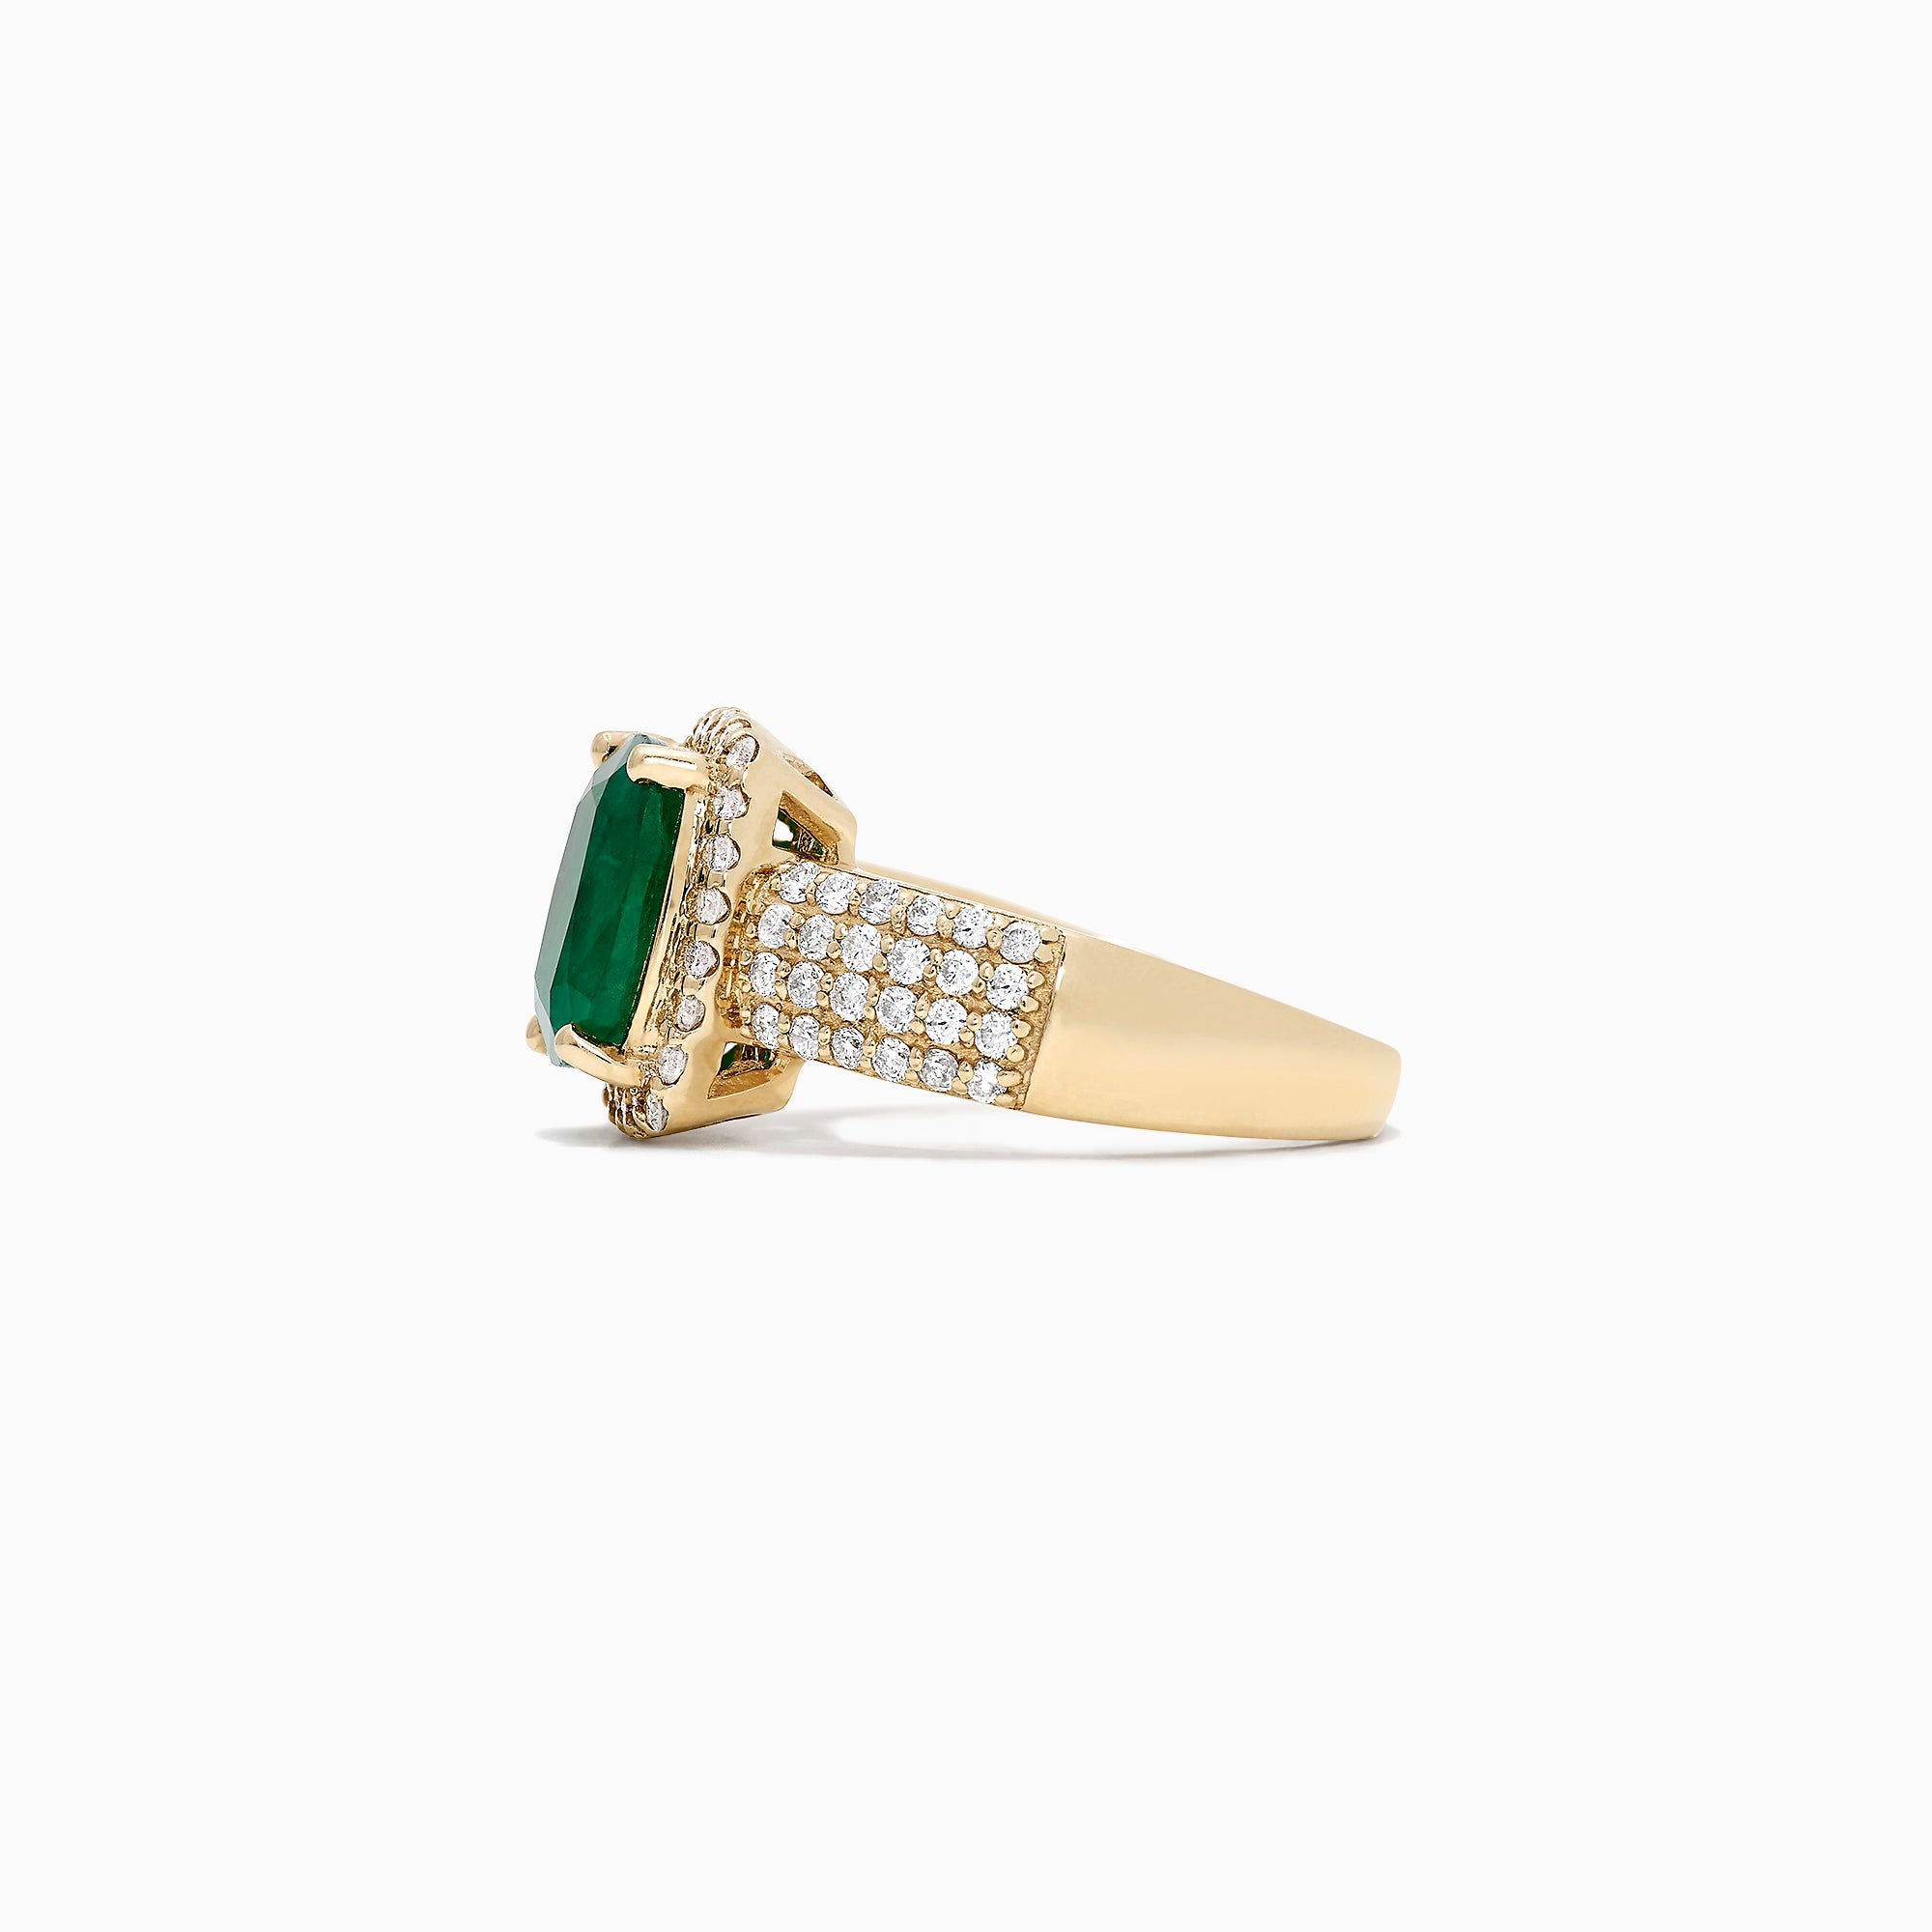 Effy Brasilica 14K Yellow Gold Emerald and Diamond Ring, 3.48 TCW